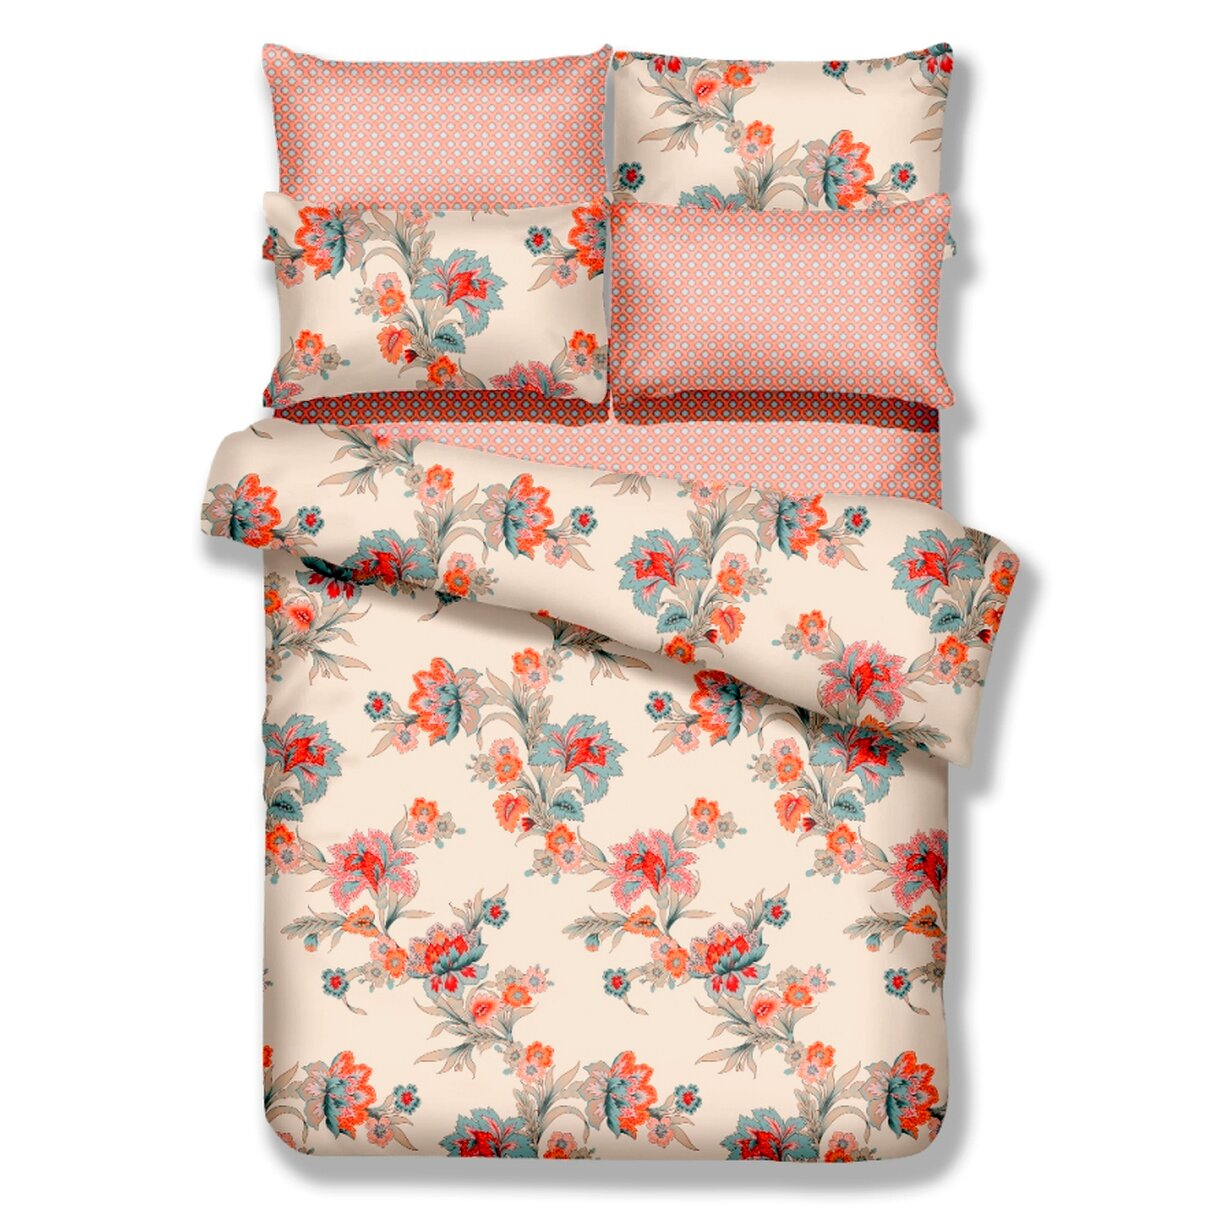 Dolce Mela Duvet Cover Set Reviews Wayfair